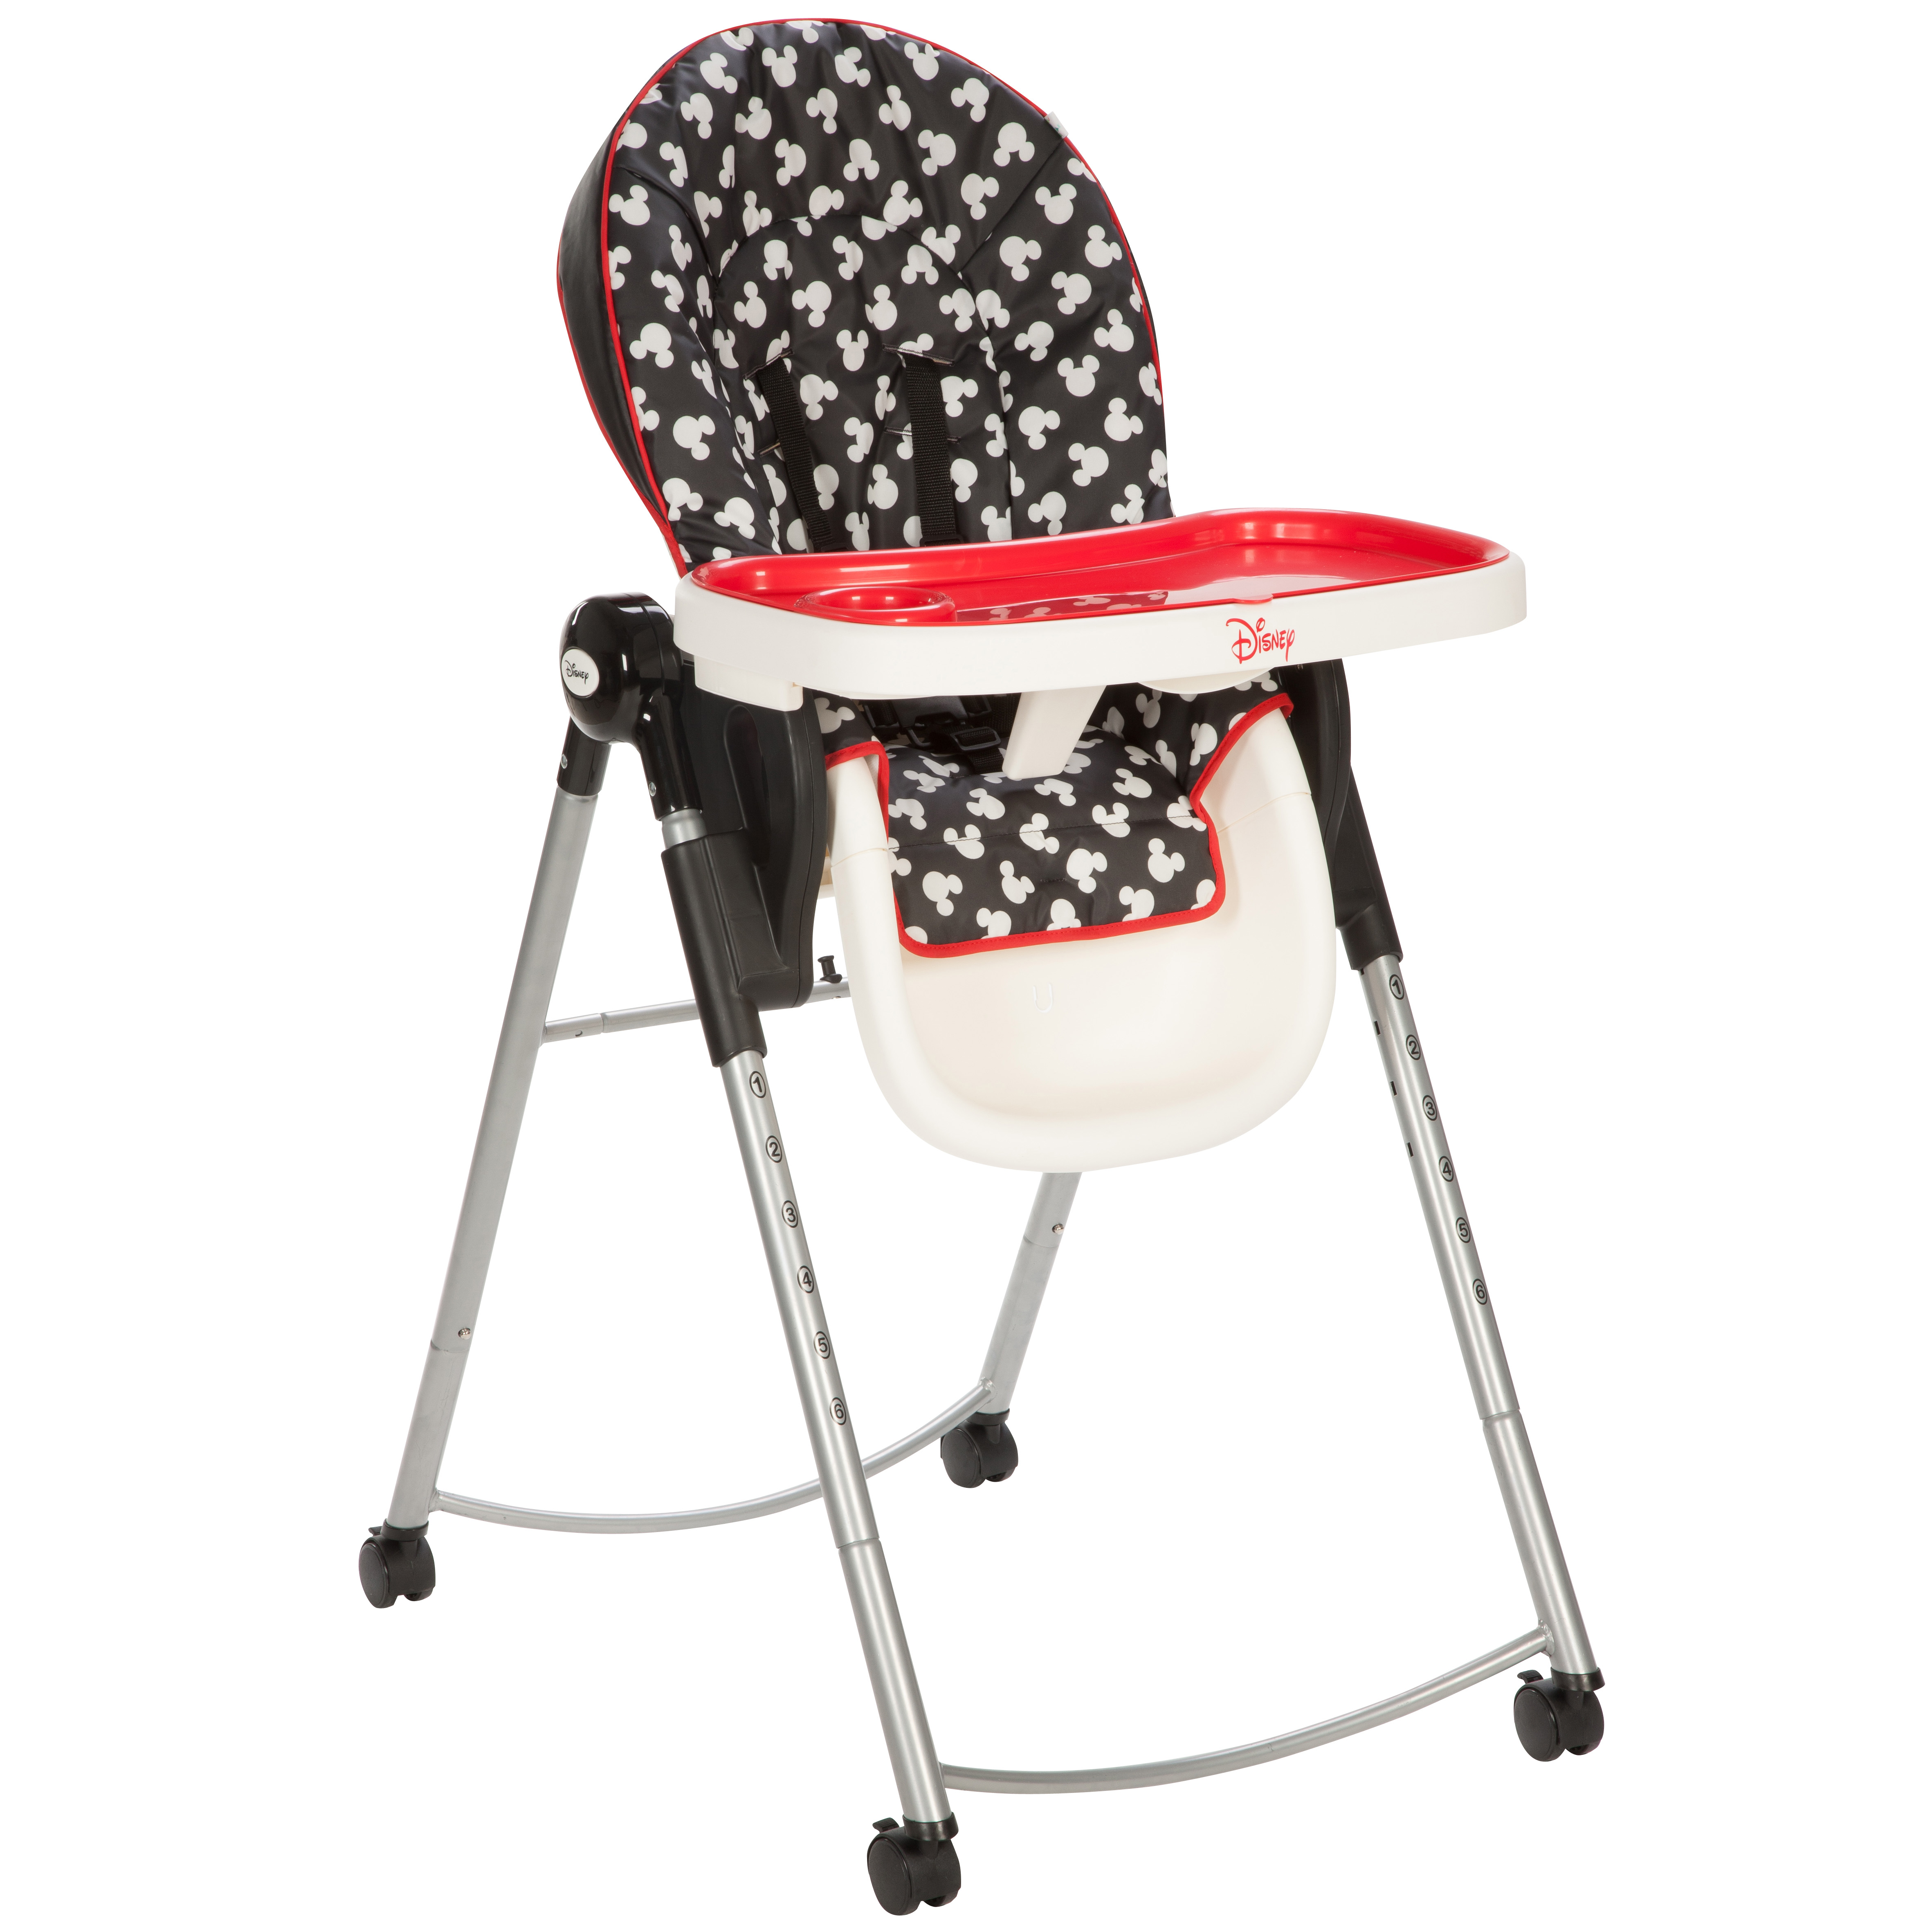 Disney Adjustable High Chair, Mickey Silo by Disney